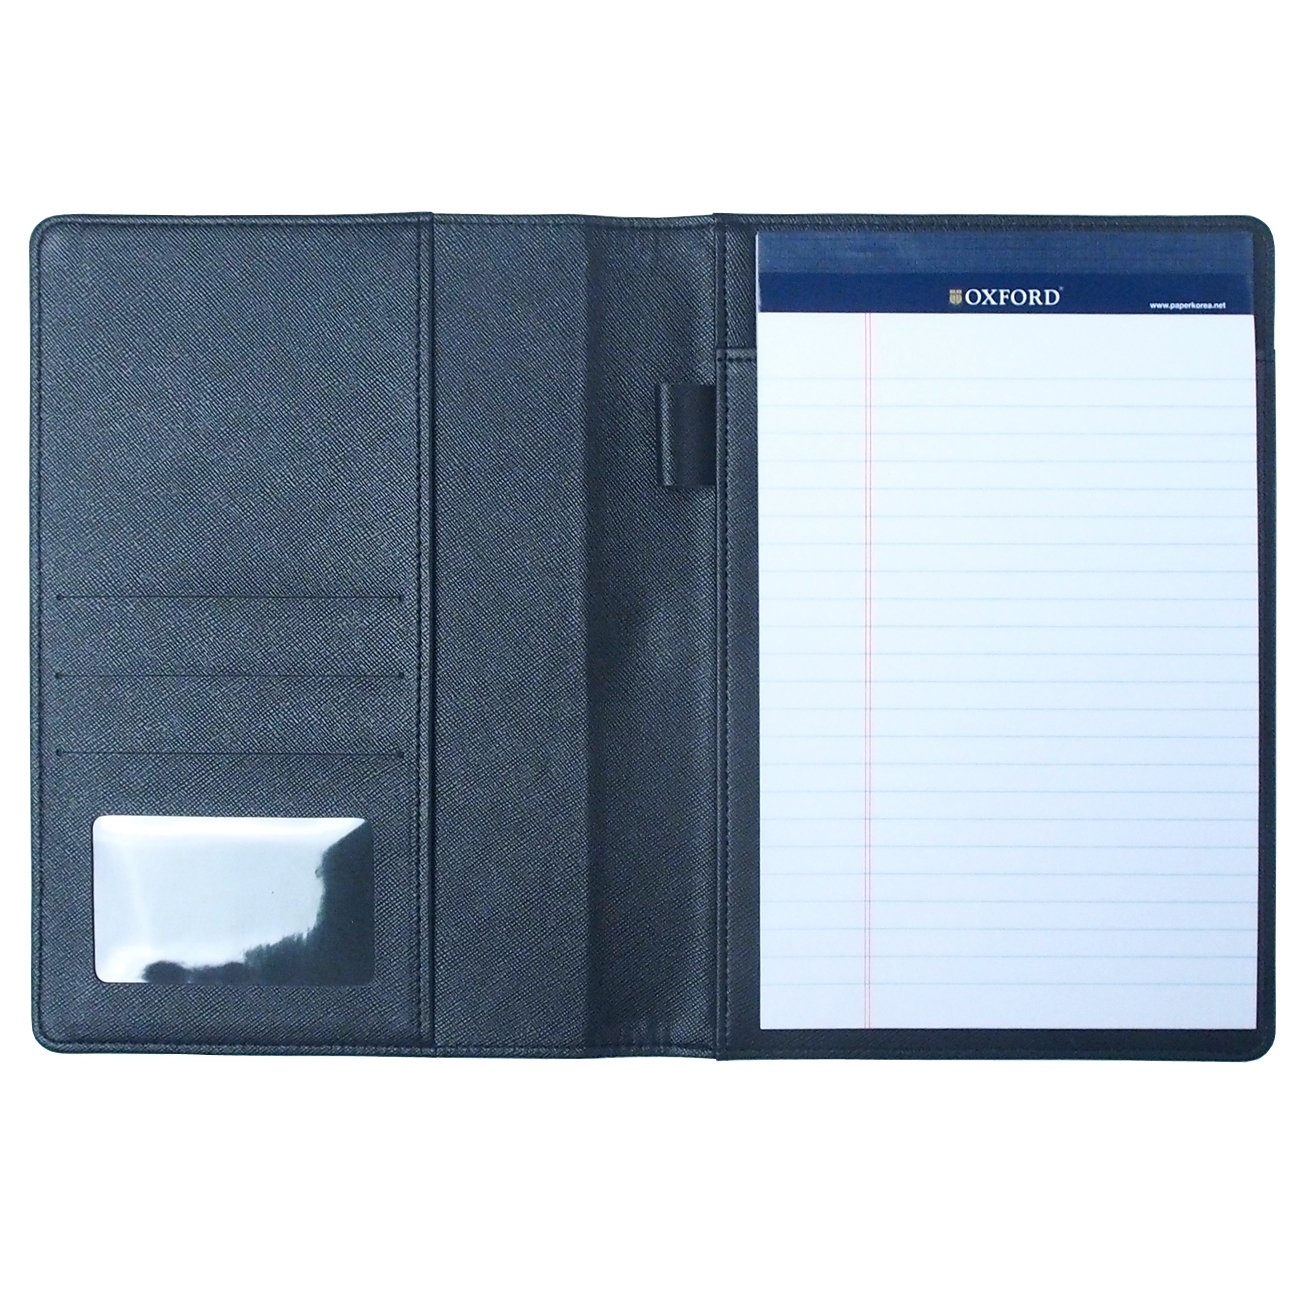 AHZOA Colorful 4 Pockets A5 Size Memo Padfolio S1, Including 5 X 8 inch Legal Writing Pad, Synthetic Leather Handmade About 6.3 X 8.7 inch Folder Clipboard Holder (Black)